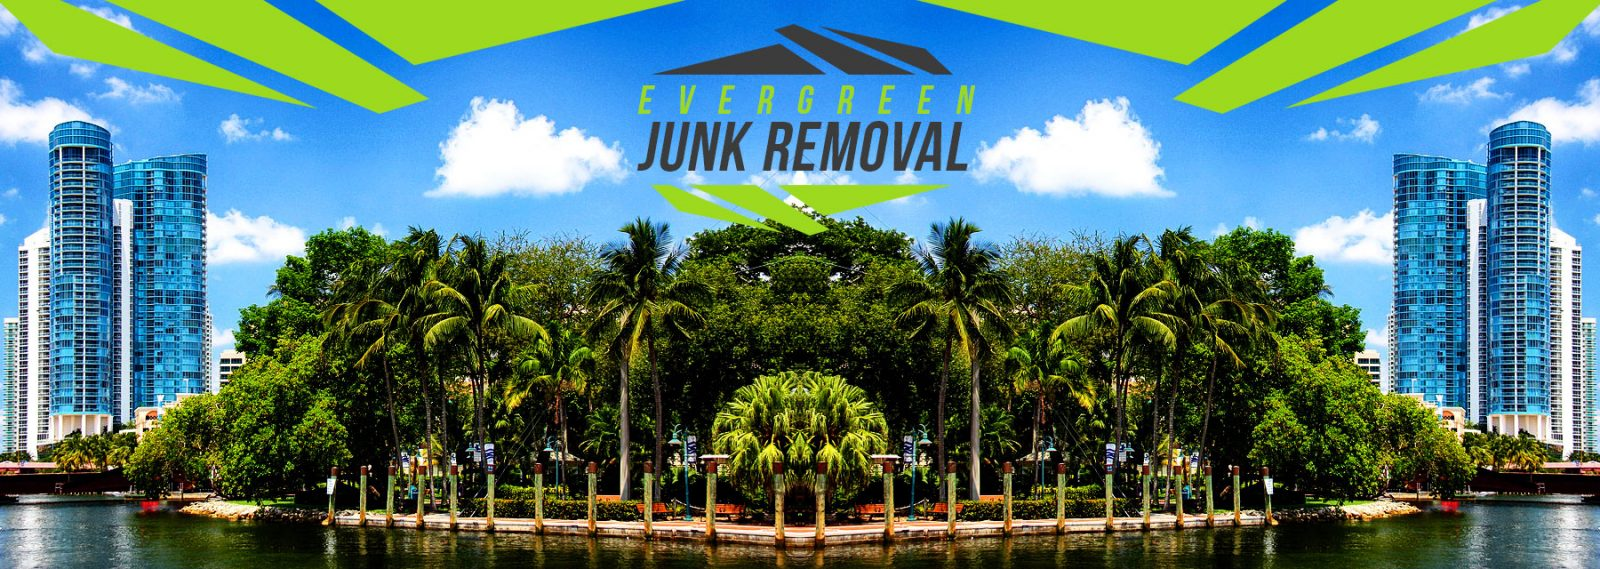 Junk Removal Deerfield Beach - Florida Junk Removal